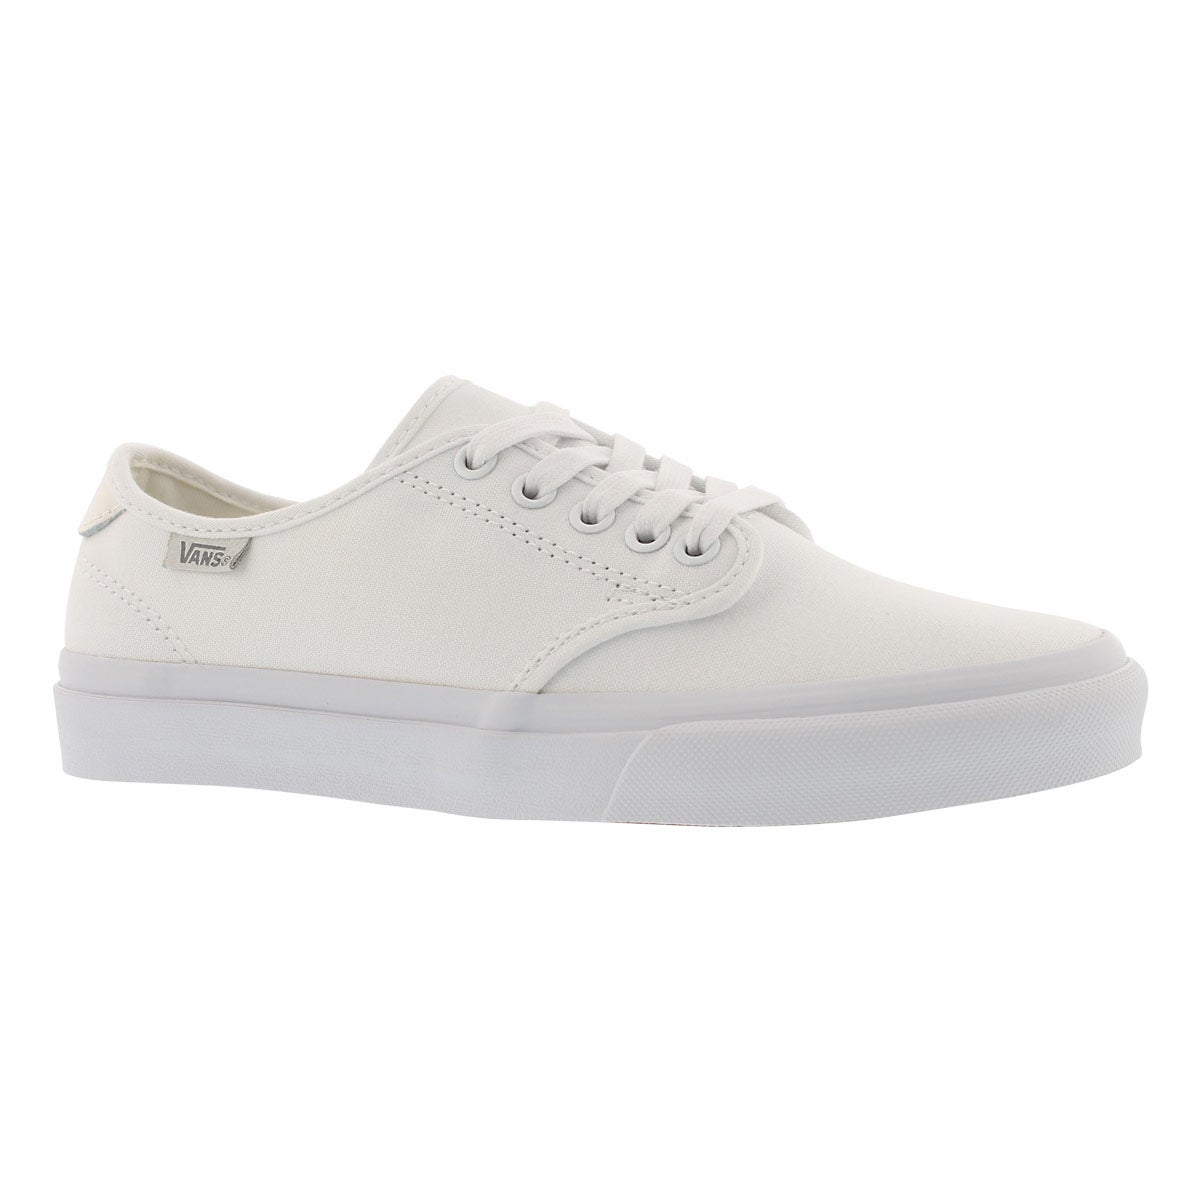 Women's CAMDEN DELUXE white/white laceup sneakers